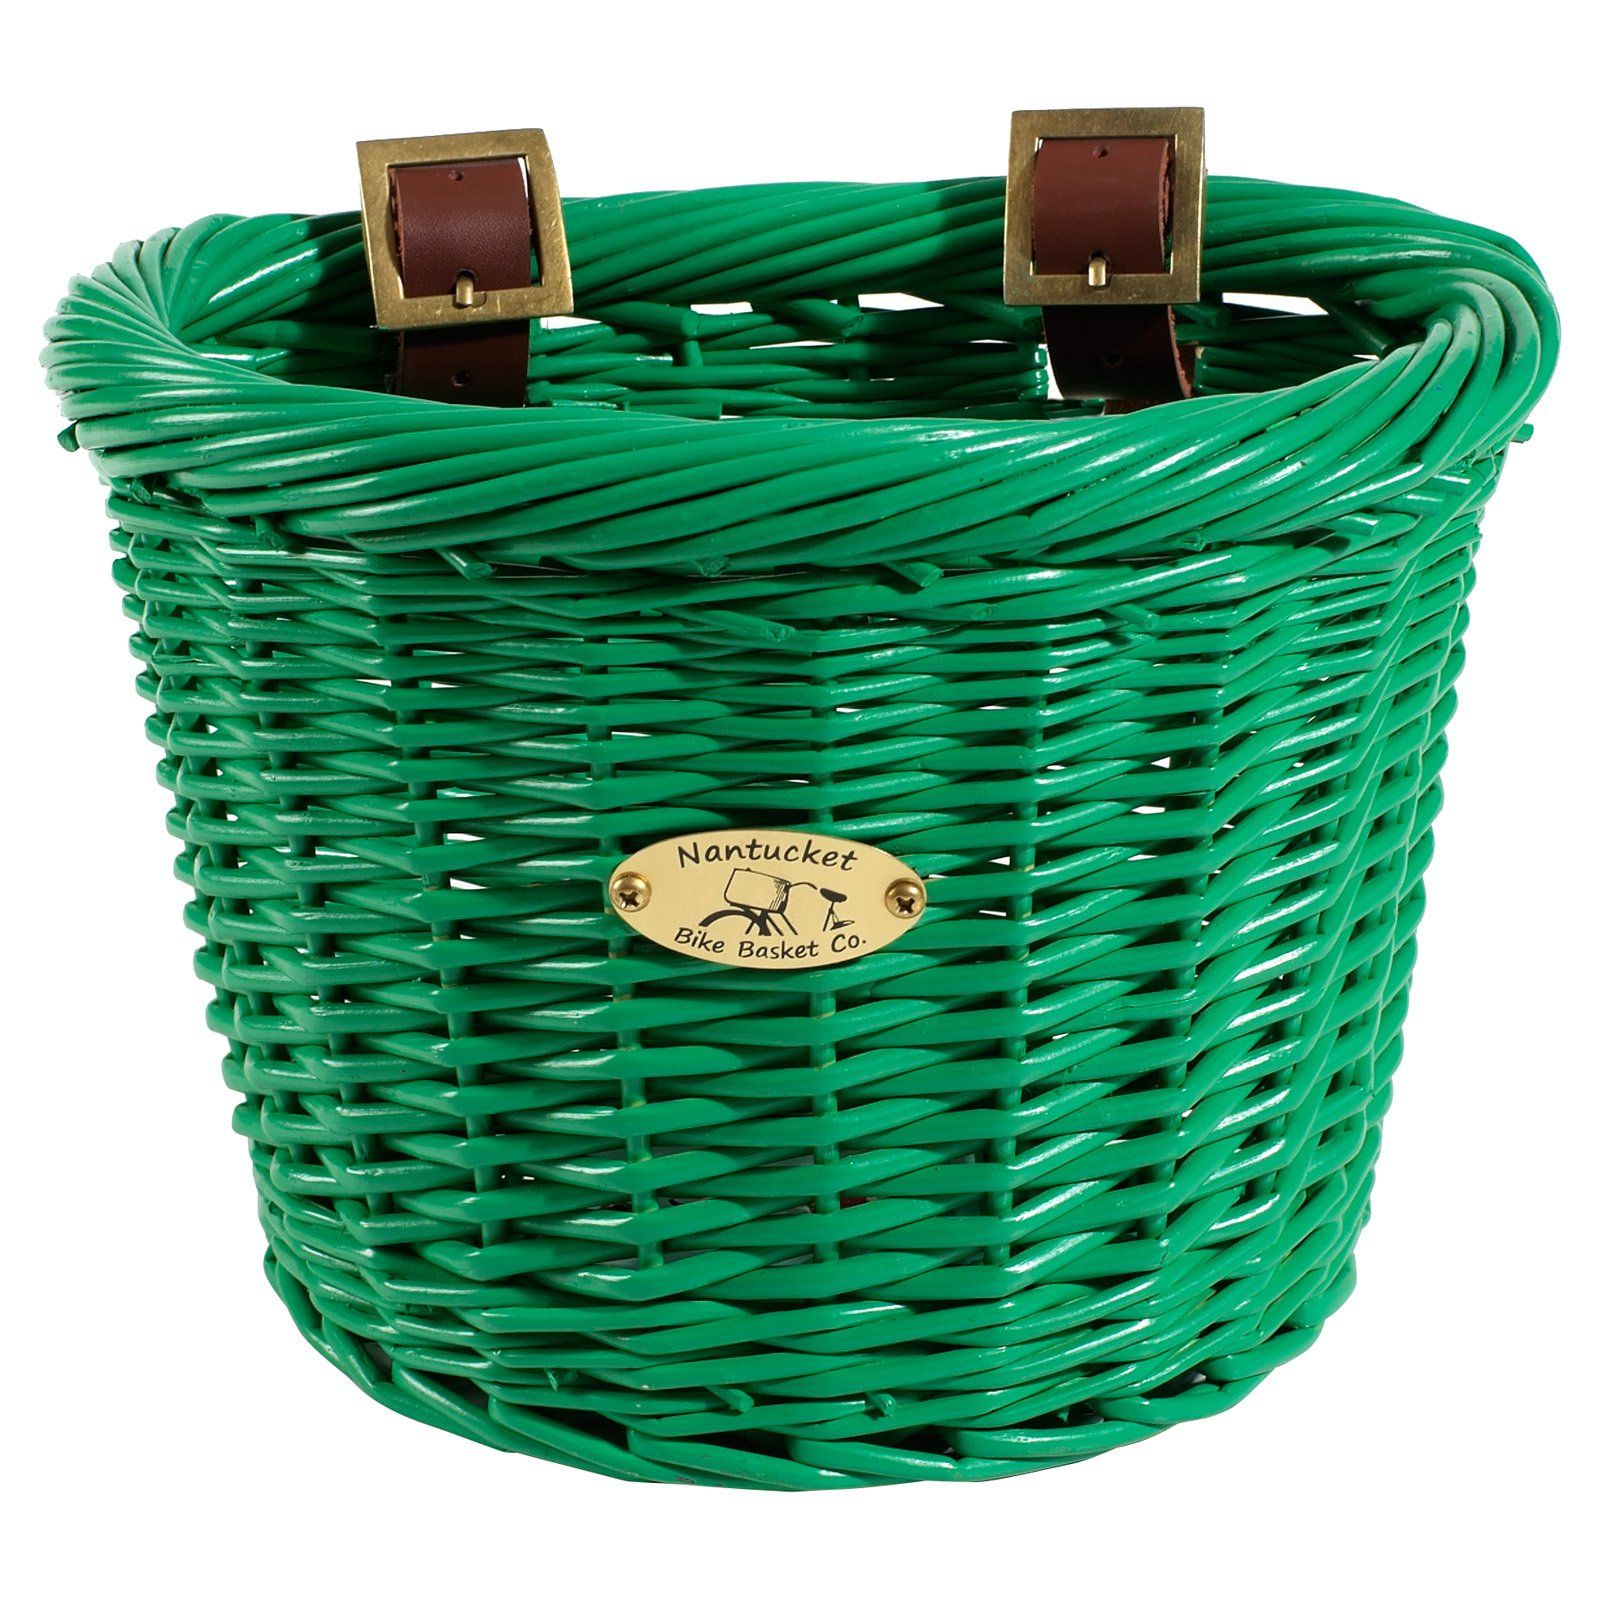 Nantucket Bike Basket Co Gull Amp Buoy Child D Shape Basket